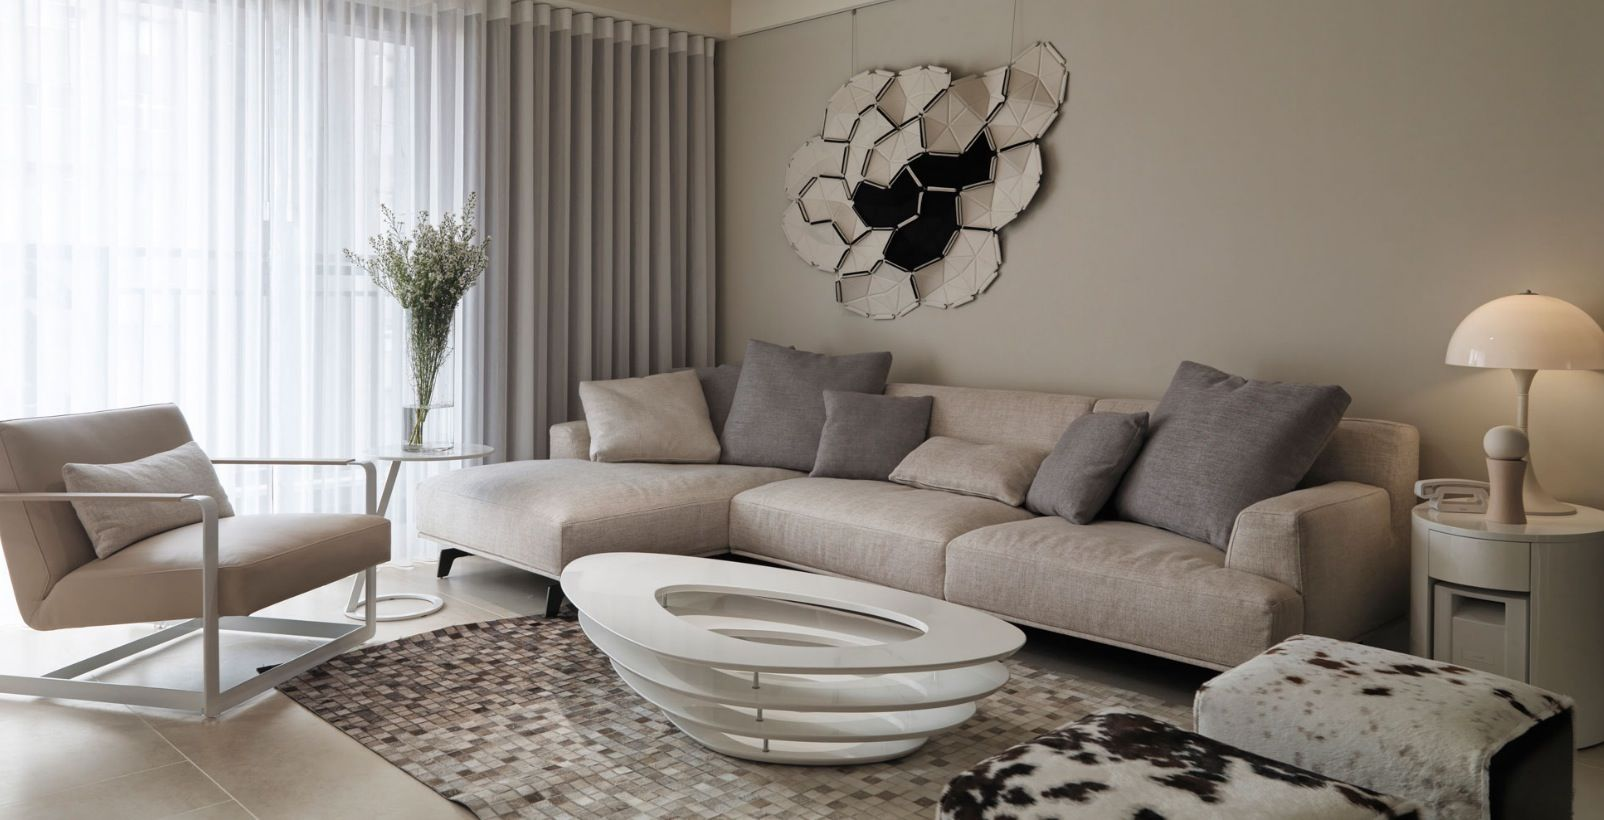 best ligne roset sofa ideas-Fascinating Ligne Roset sofa Gallery